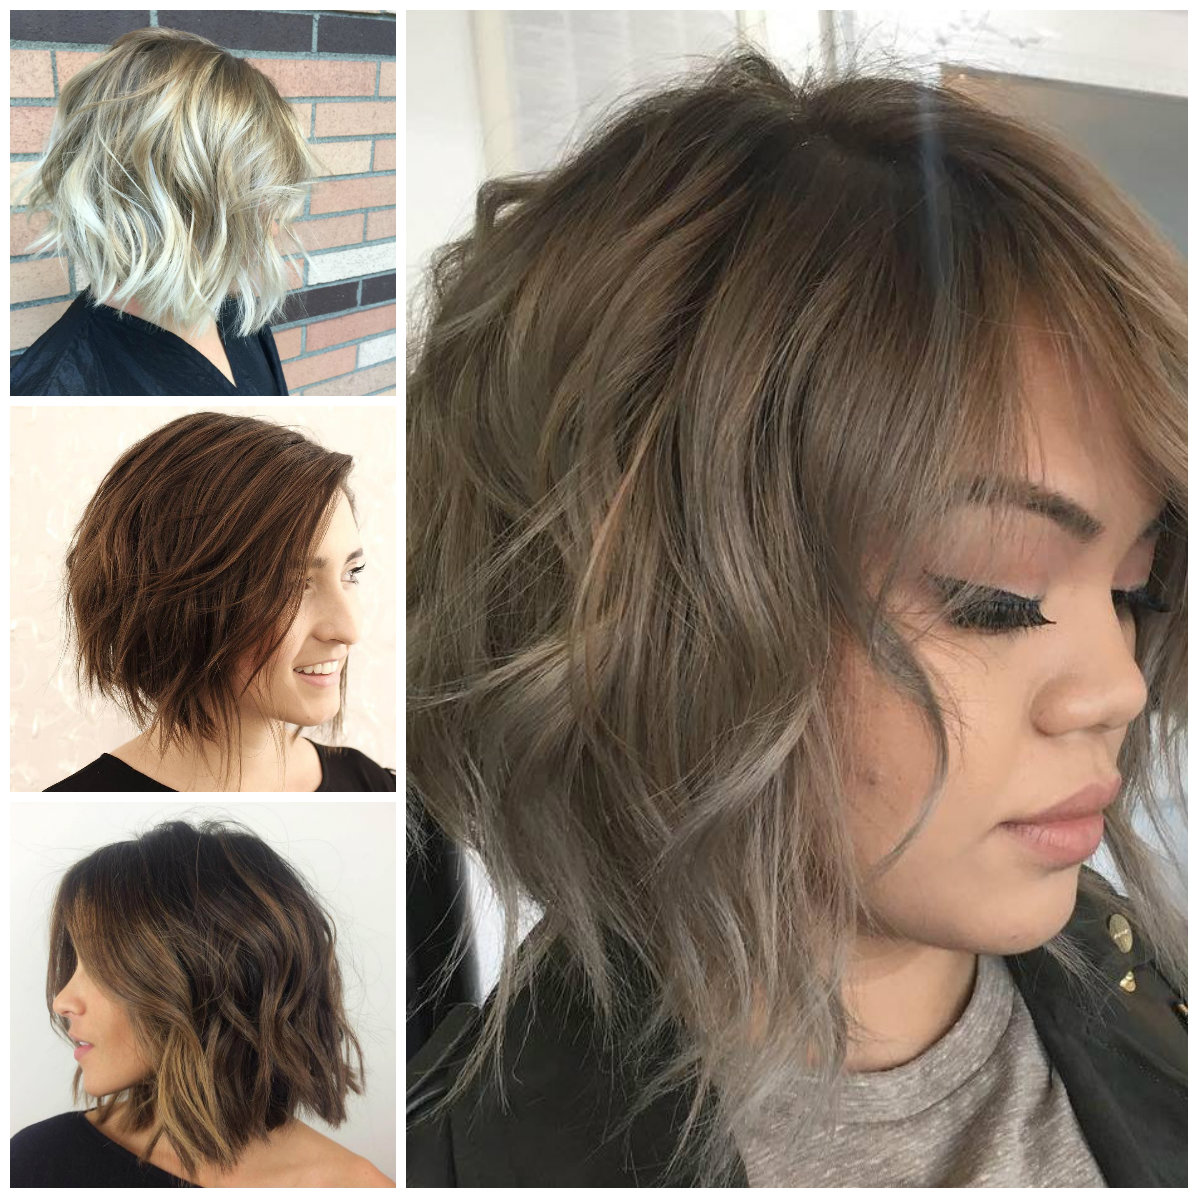 Casual Short Messy Hairstyles For Females 2019 Haircuts